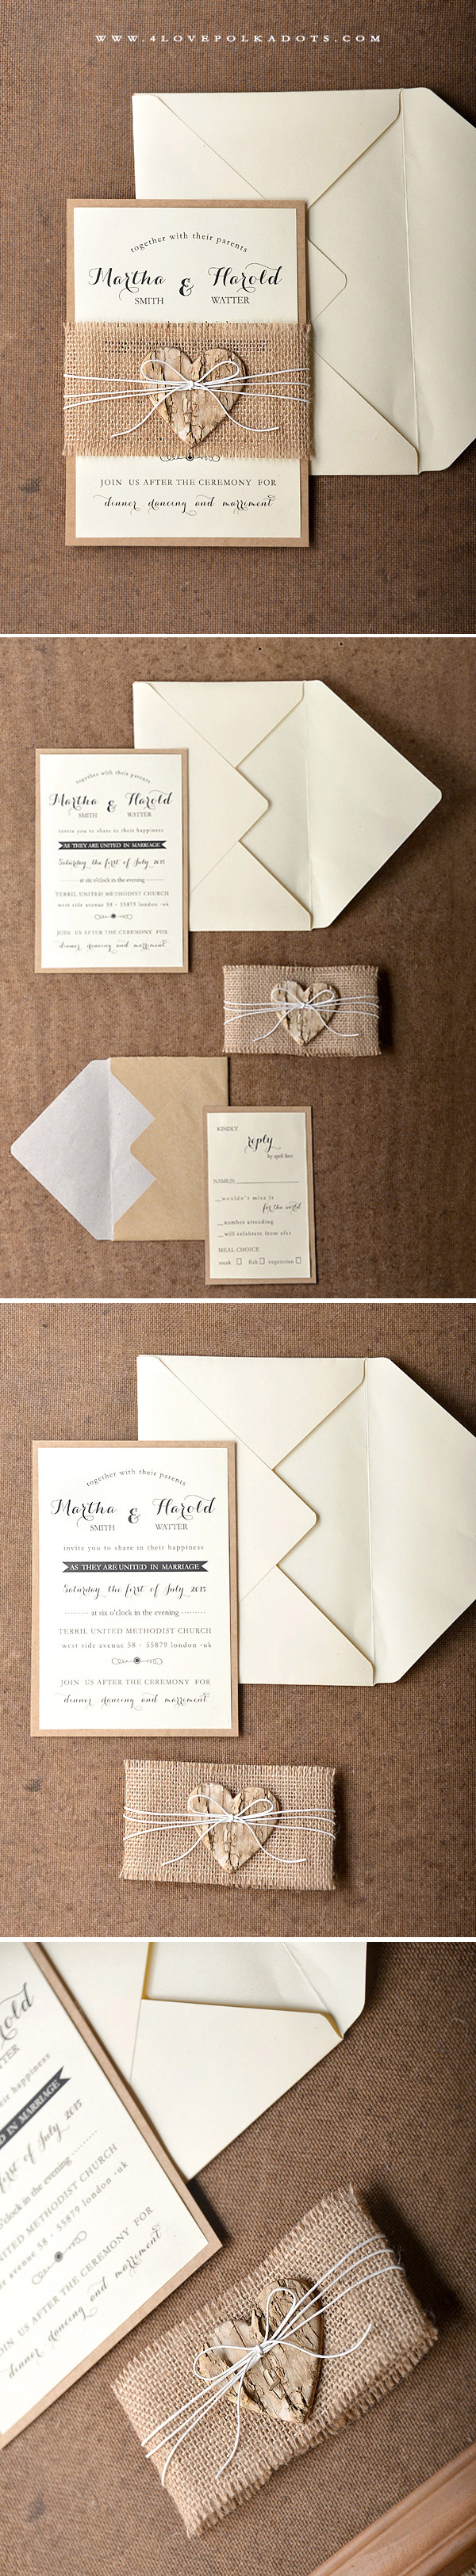 WEDDING INVITATIONS calligraphy | Birch bark, Handmade wedding and ...